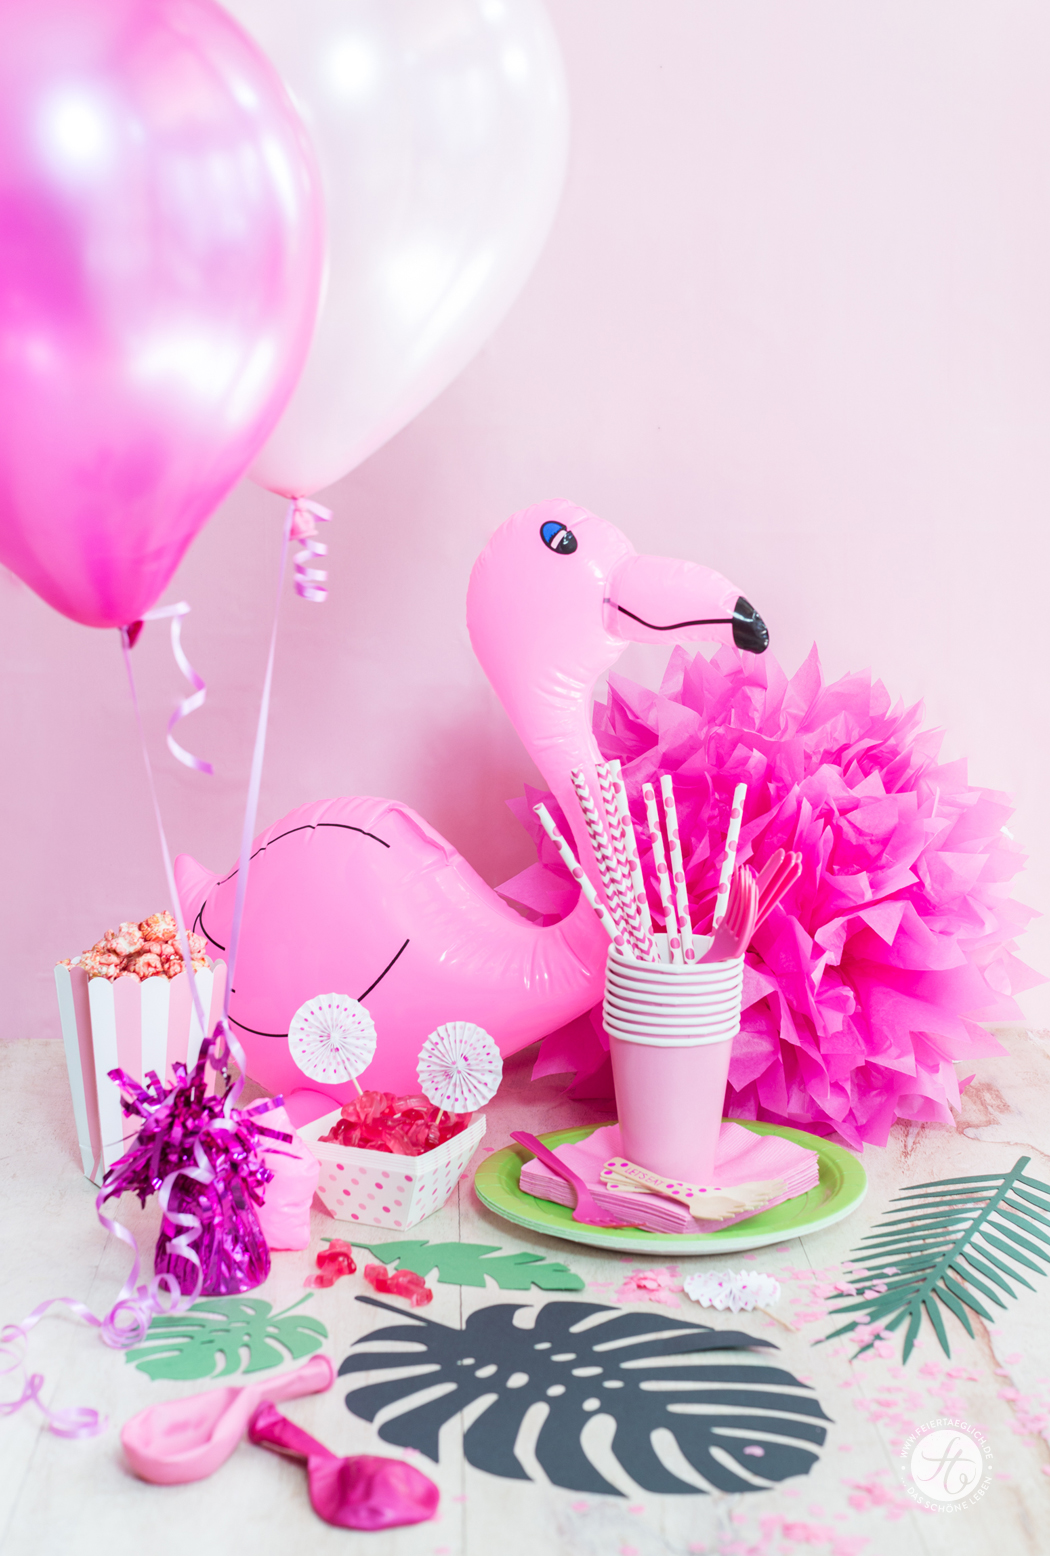 Partydecorations Amscan, Gewinnpaket, feiertäglich HappyMottoparty Flamingo